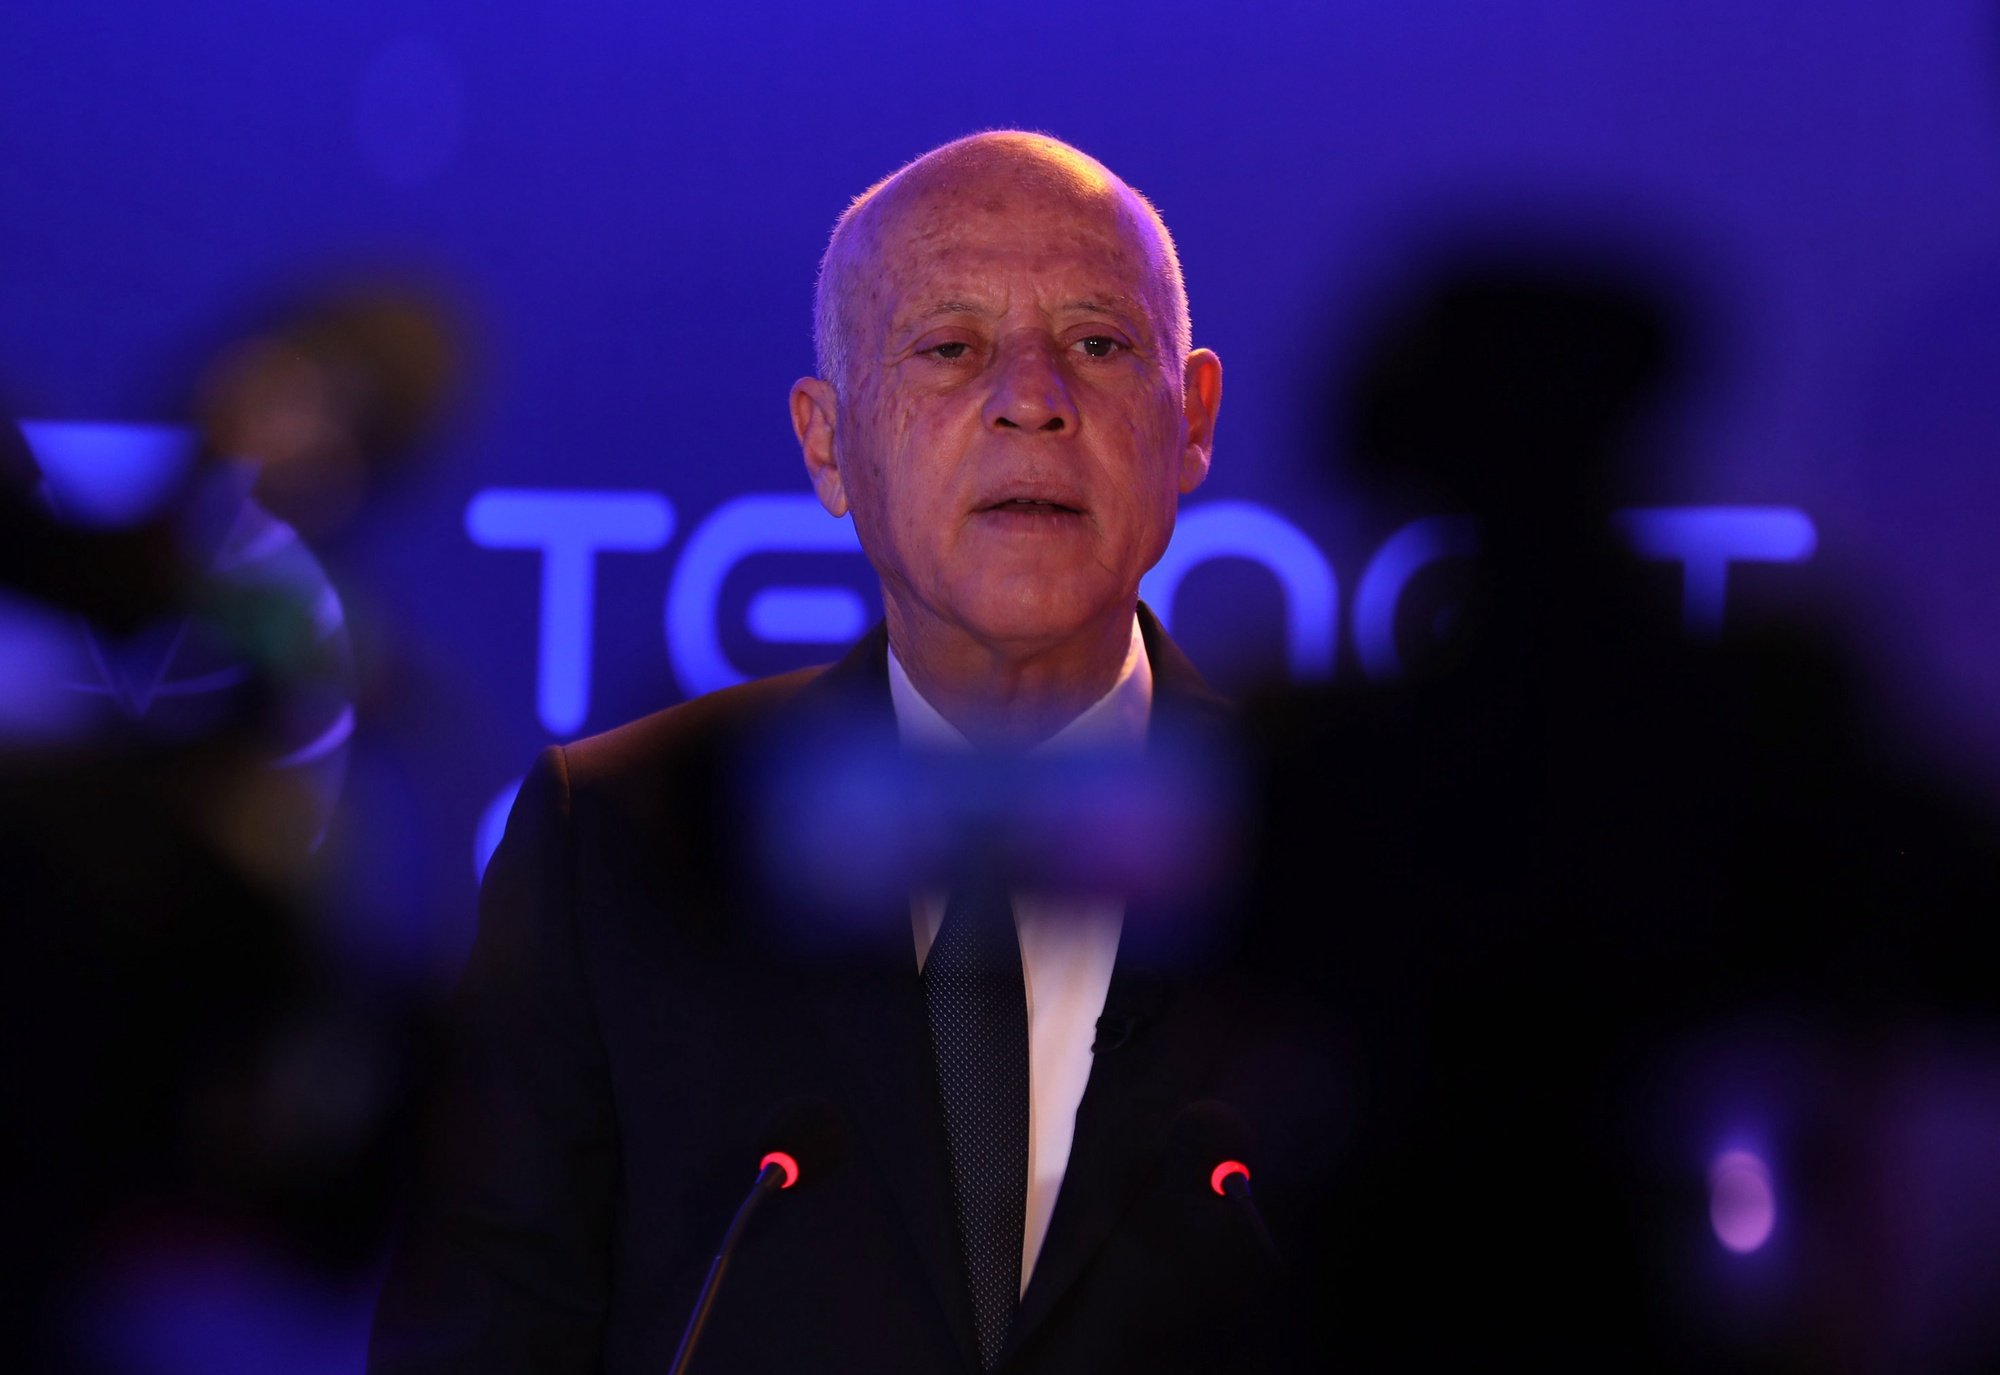 epa09365583 (FILE) - Tunisian President Kais Saied speaks during the launch of Tunisia's first satellite 'Challenge-1', which was created by the Telnet telecommunications group, in Tunis, Tunisia, 22 March 2021 (Reissued 25 July 2021). On 25 July 2021 following protests in multiple cities against the government's handling of the COVID-19 pandemic, Tunisian President Kais Saied anounced that he is relieving Prime Minister Hicham Mechichi, freezing the Parliament and suspending its members immunity, and assuming control of the executive authority with the assistance of a new Prime Minister to be selected at a later date.  EPA/MOHAMED MESSARA *** Local Caption *** 56778570